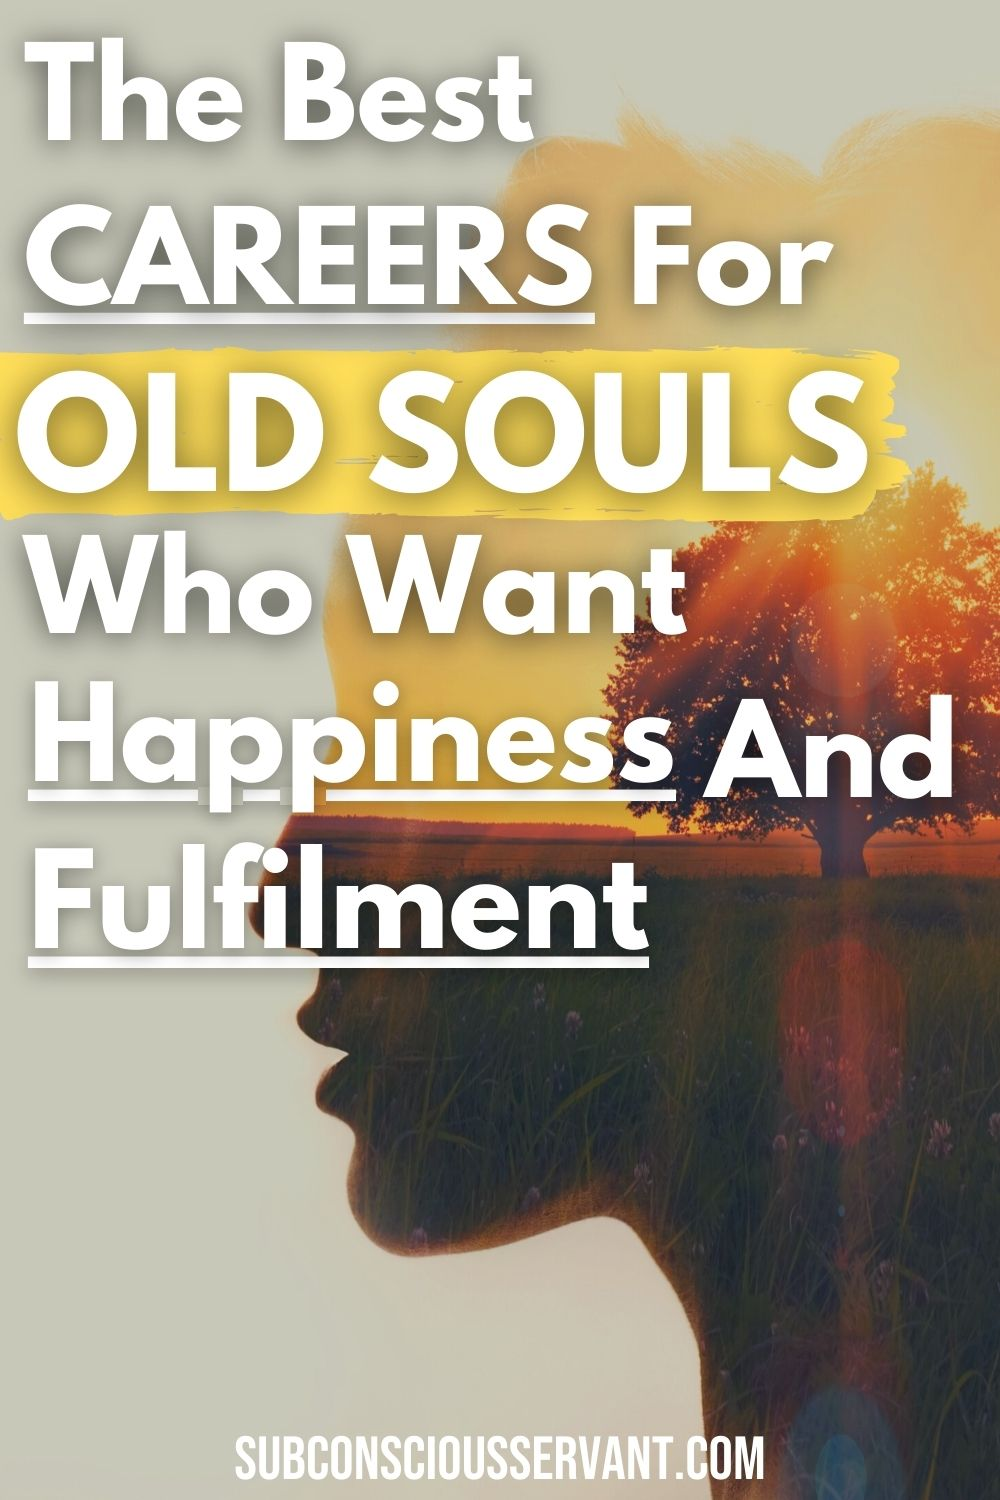 Revealed: The Best Careers for Old Souls Who Want Fulfillment